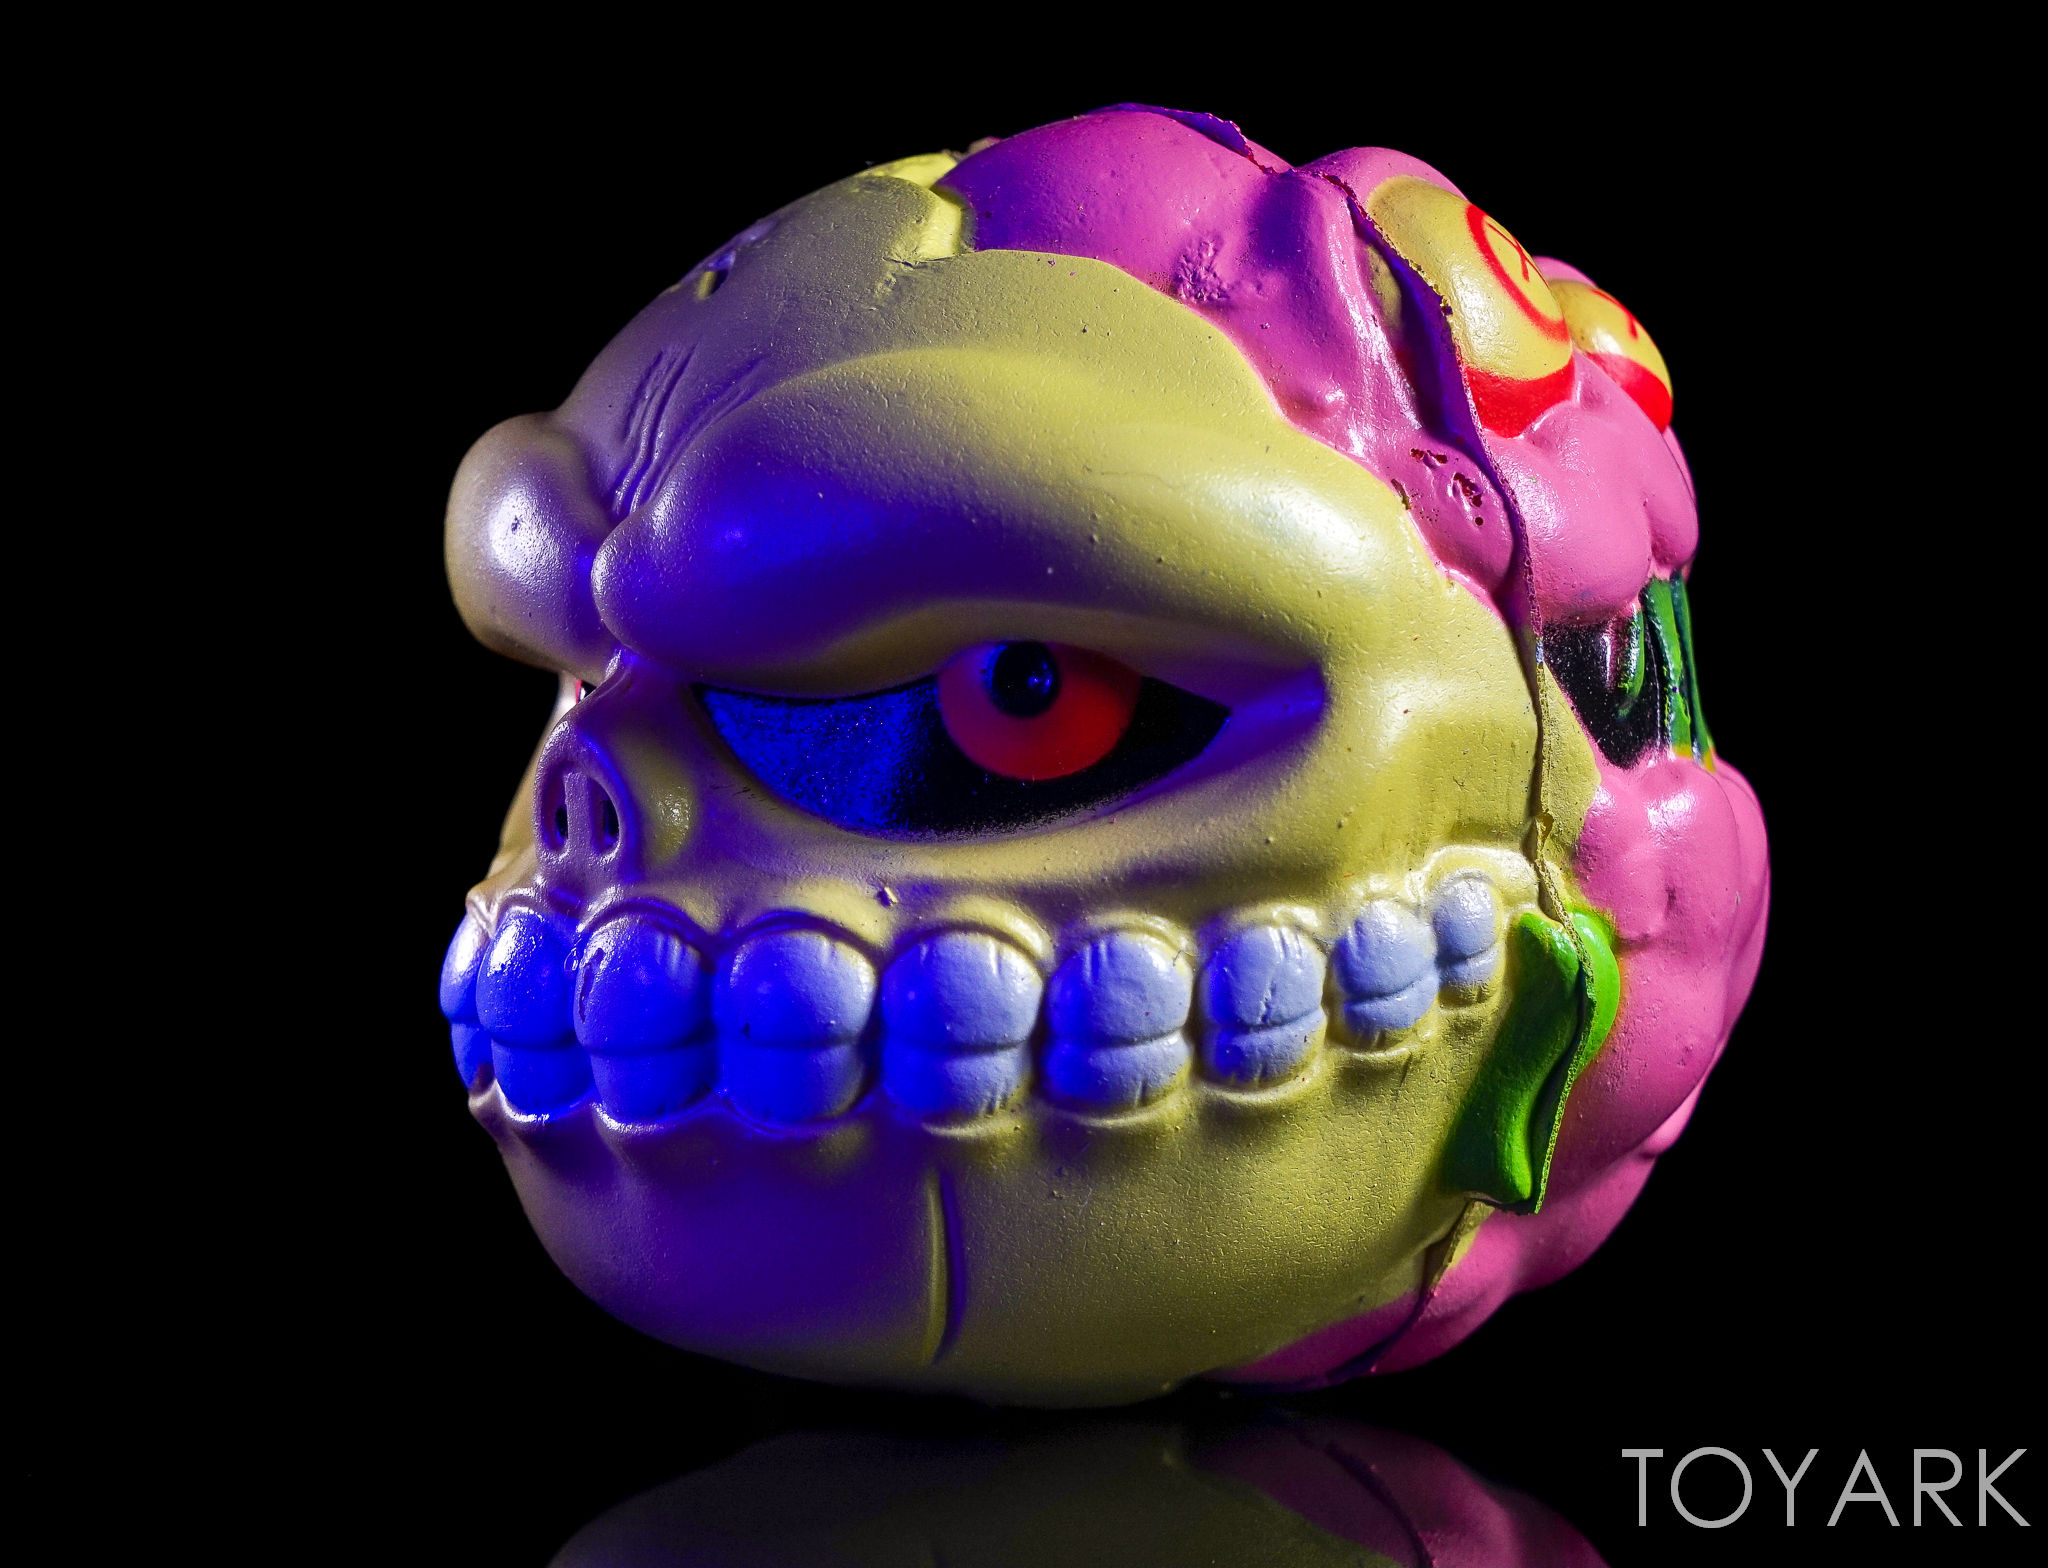 http://news.toyark.com/wp-content/uploads/sites/4/2017/01/Just-Play-Series-1-Madballs-042.jpg